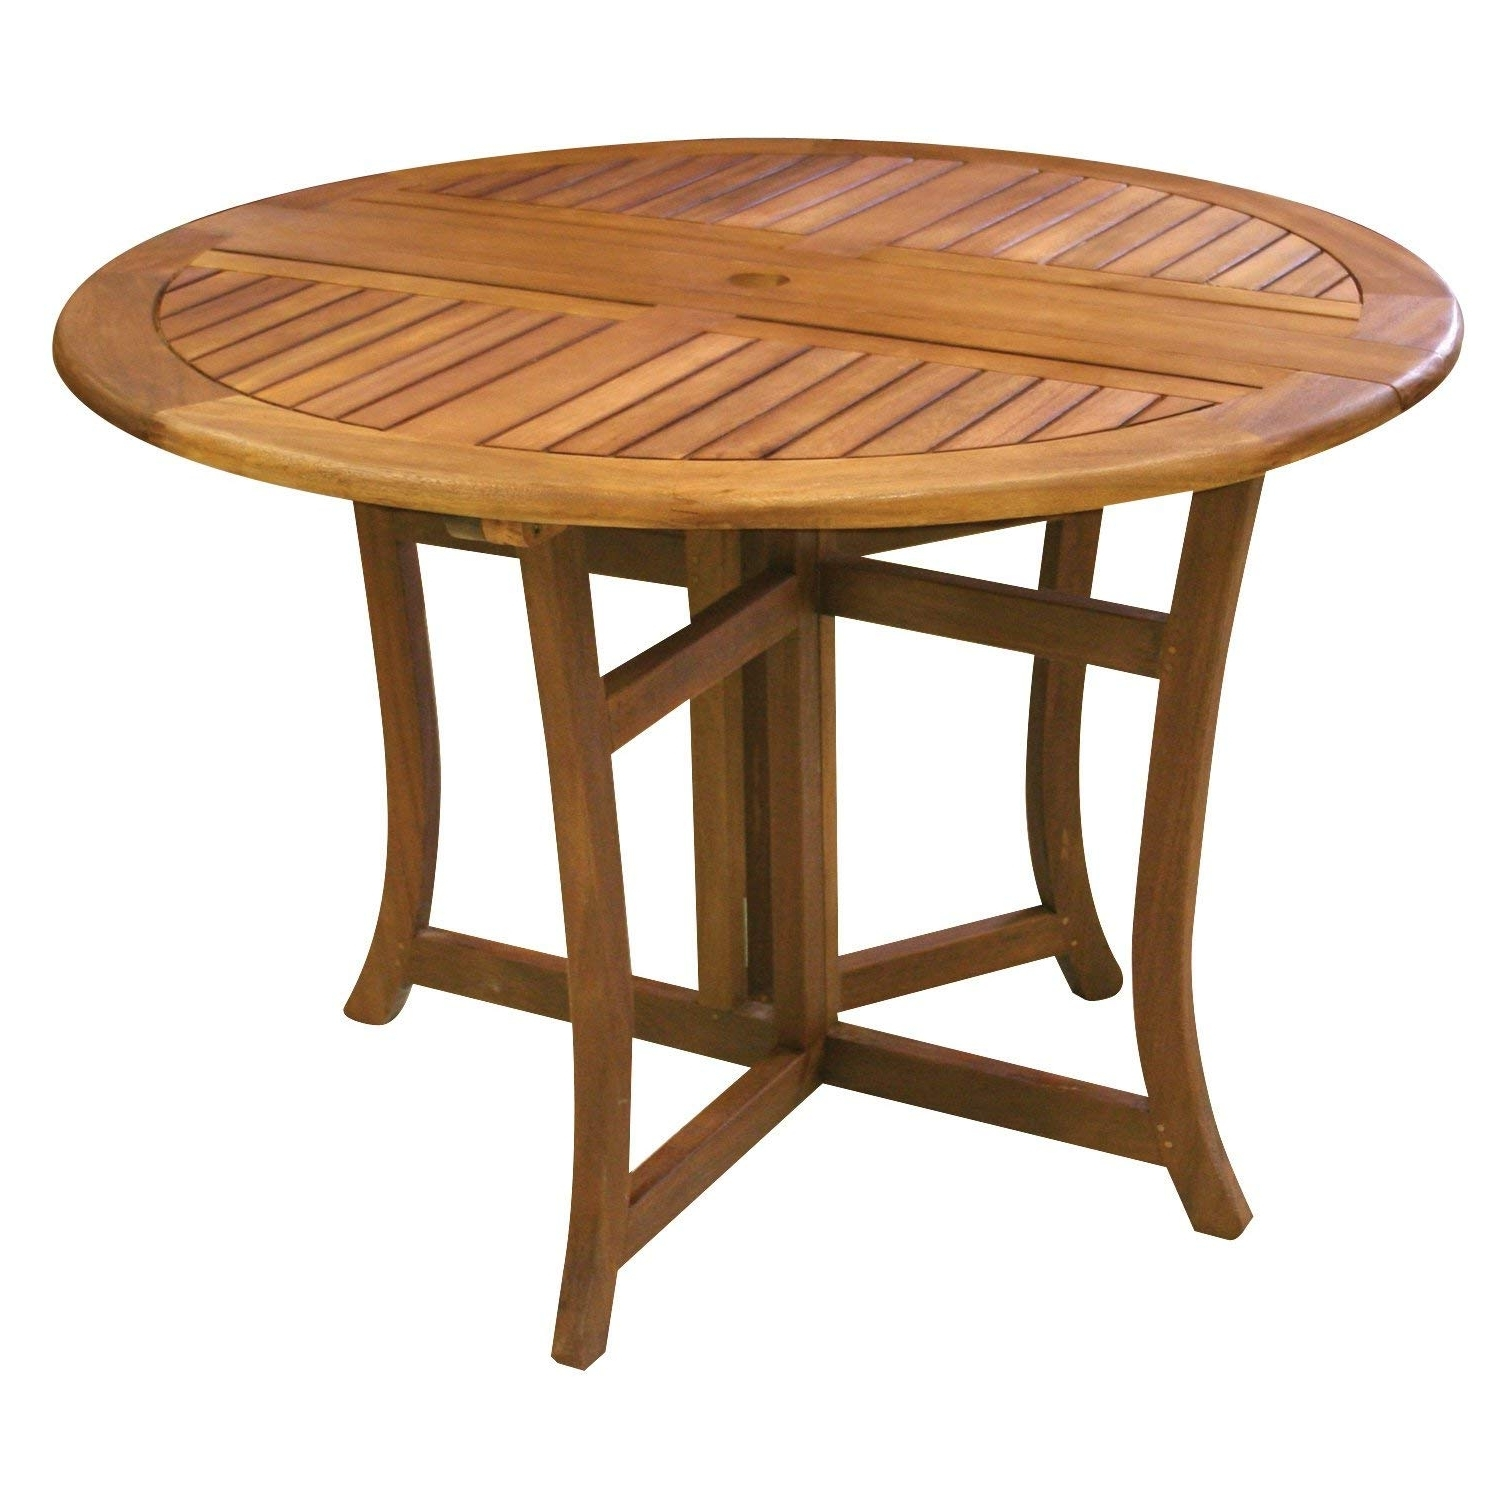 Folding Outdoor Dining Tables Inside Well Known Amazon : Eucalyptus 43 Inch Round Folding Deck Table : Patio (View 3 of 25)